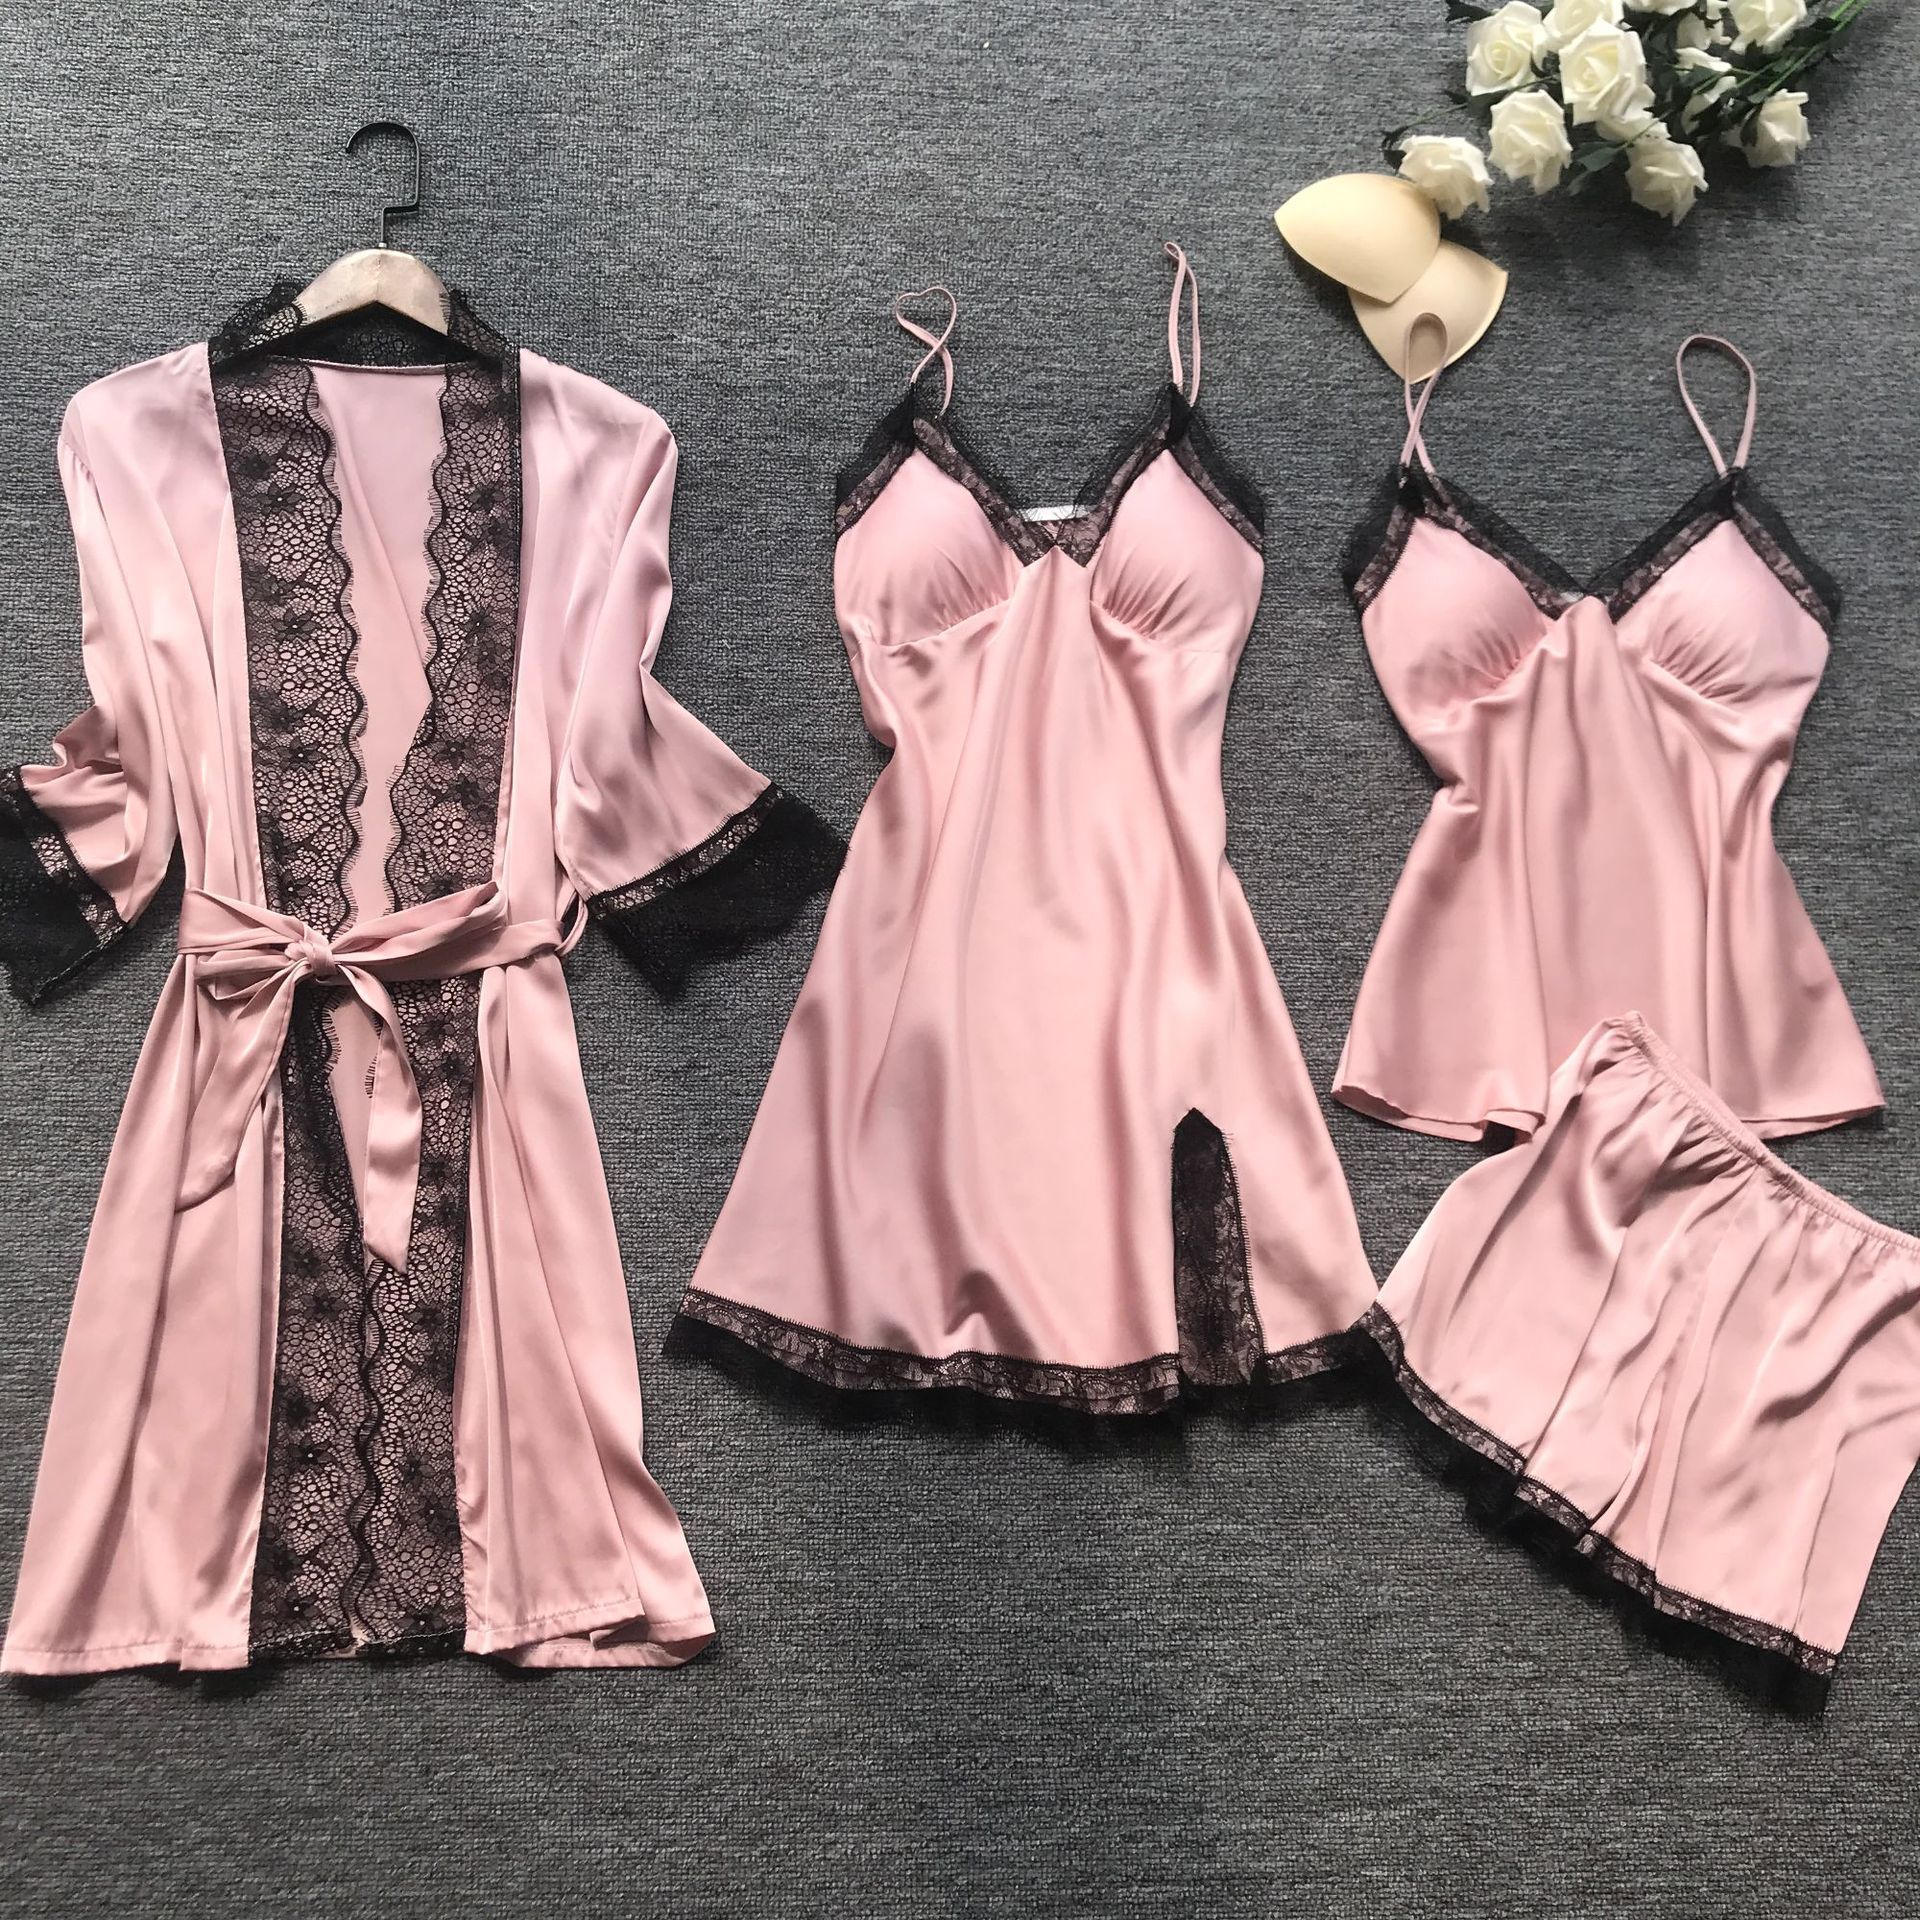 Summr New Satin Black Lace Fashion Women Sleepwear With Chest Pad Nightdress Shorst Cardigan Set Pajamas